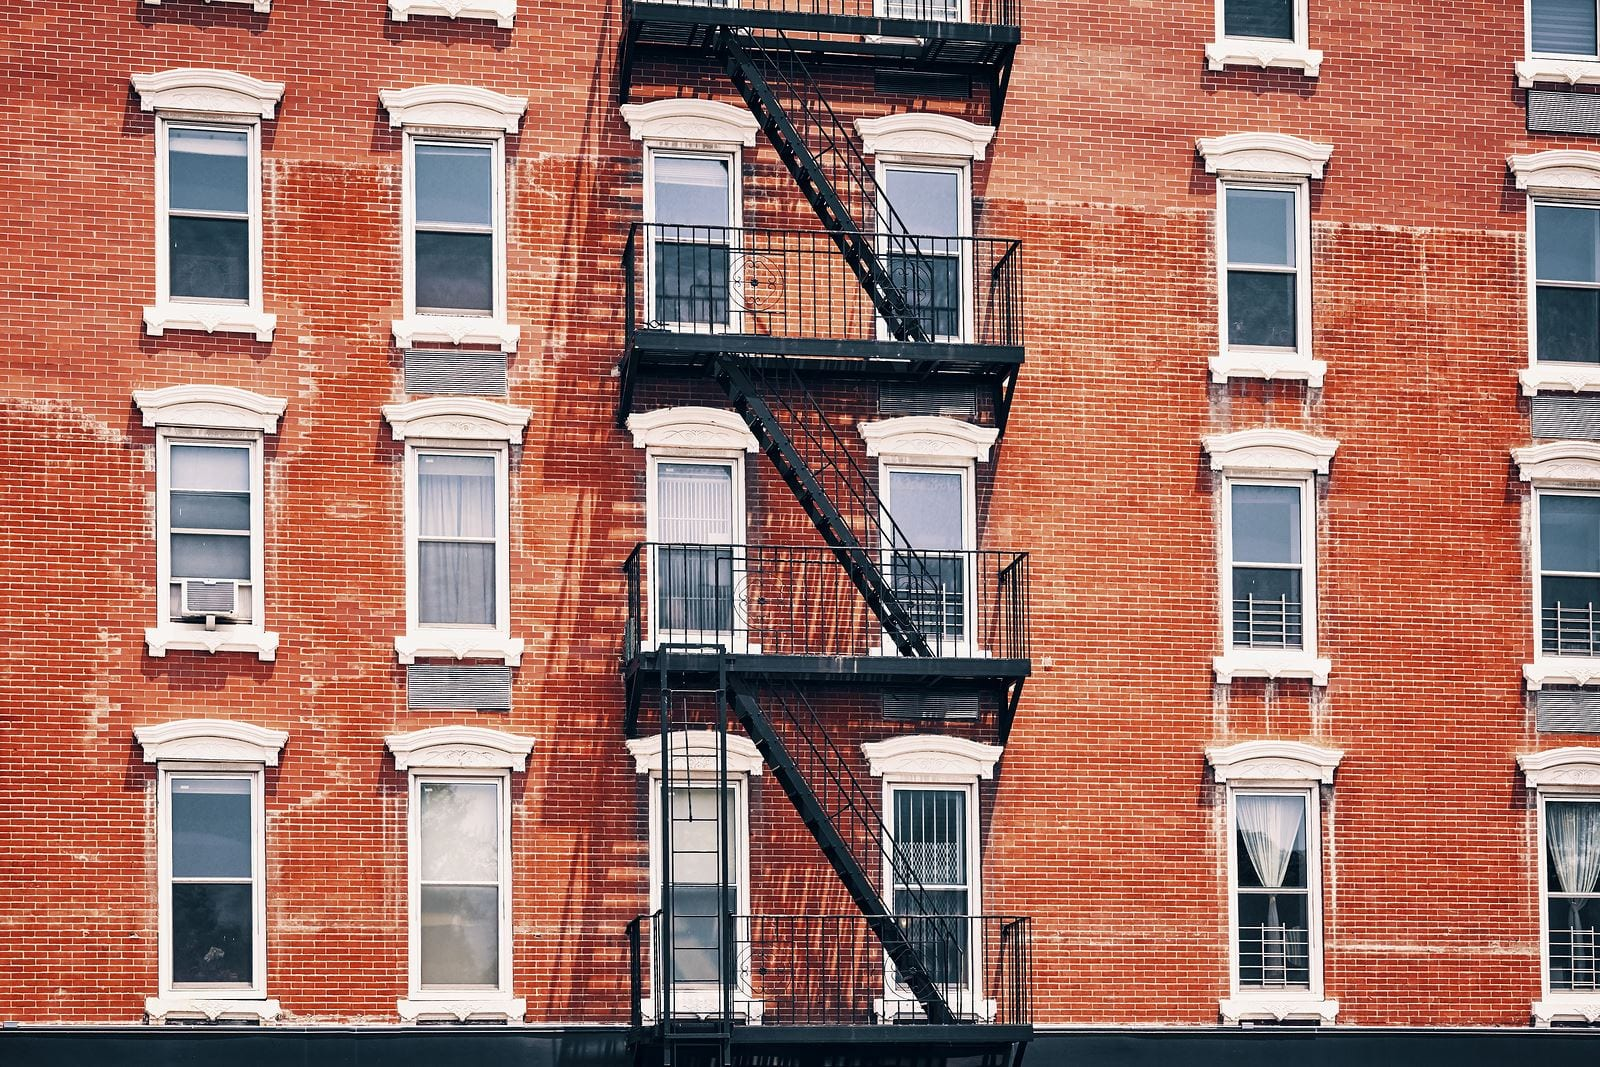 Co-op Apartments: Do They Make Good Investment Properties